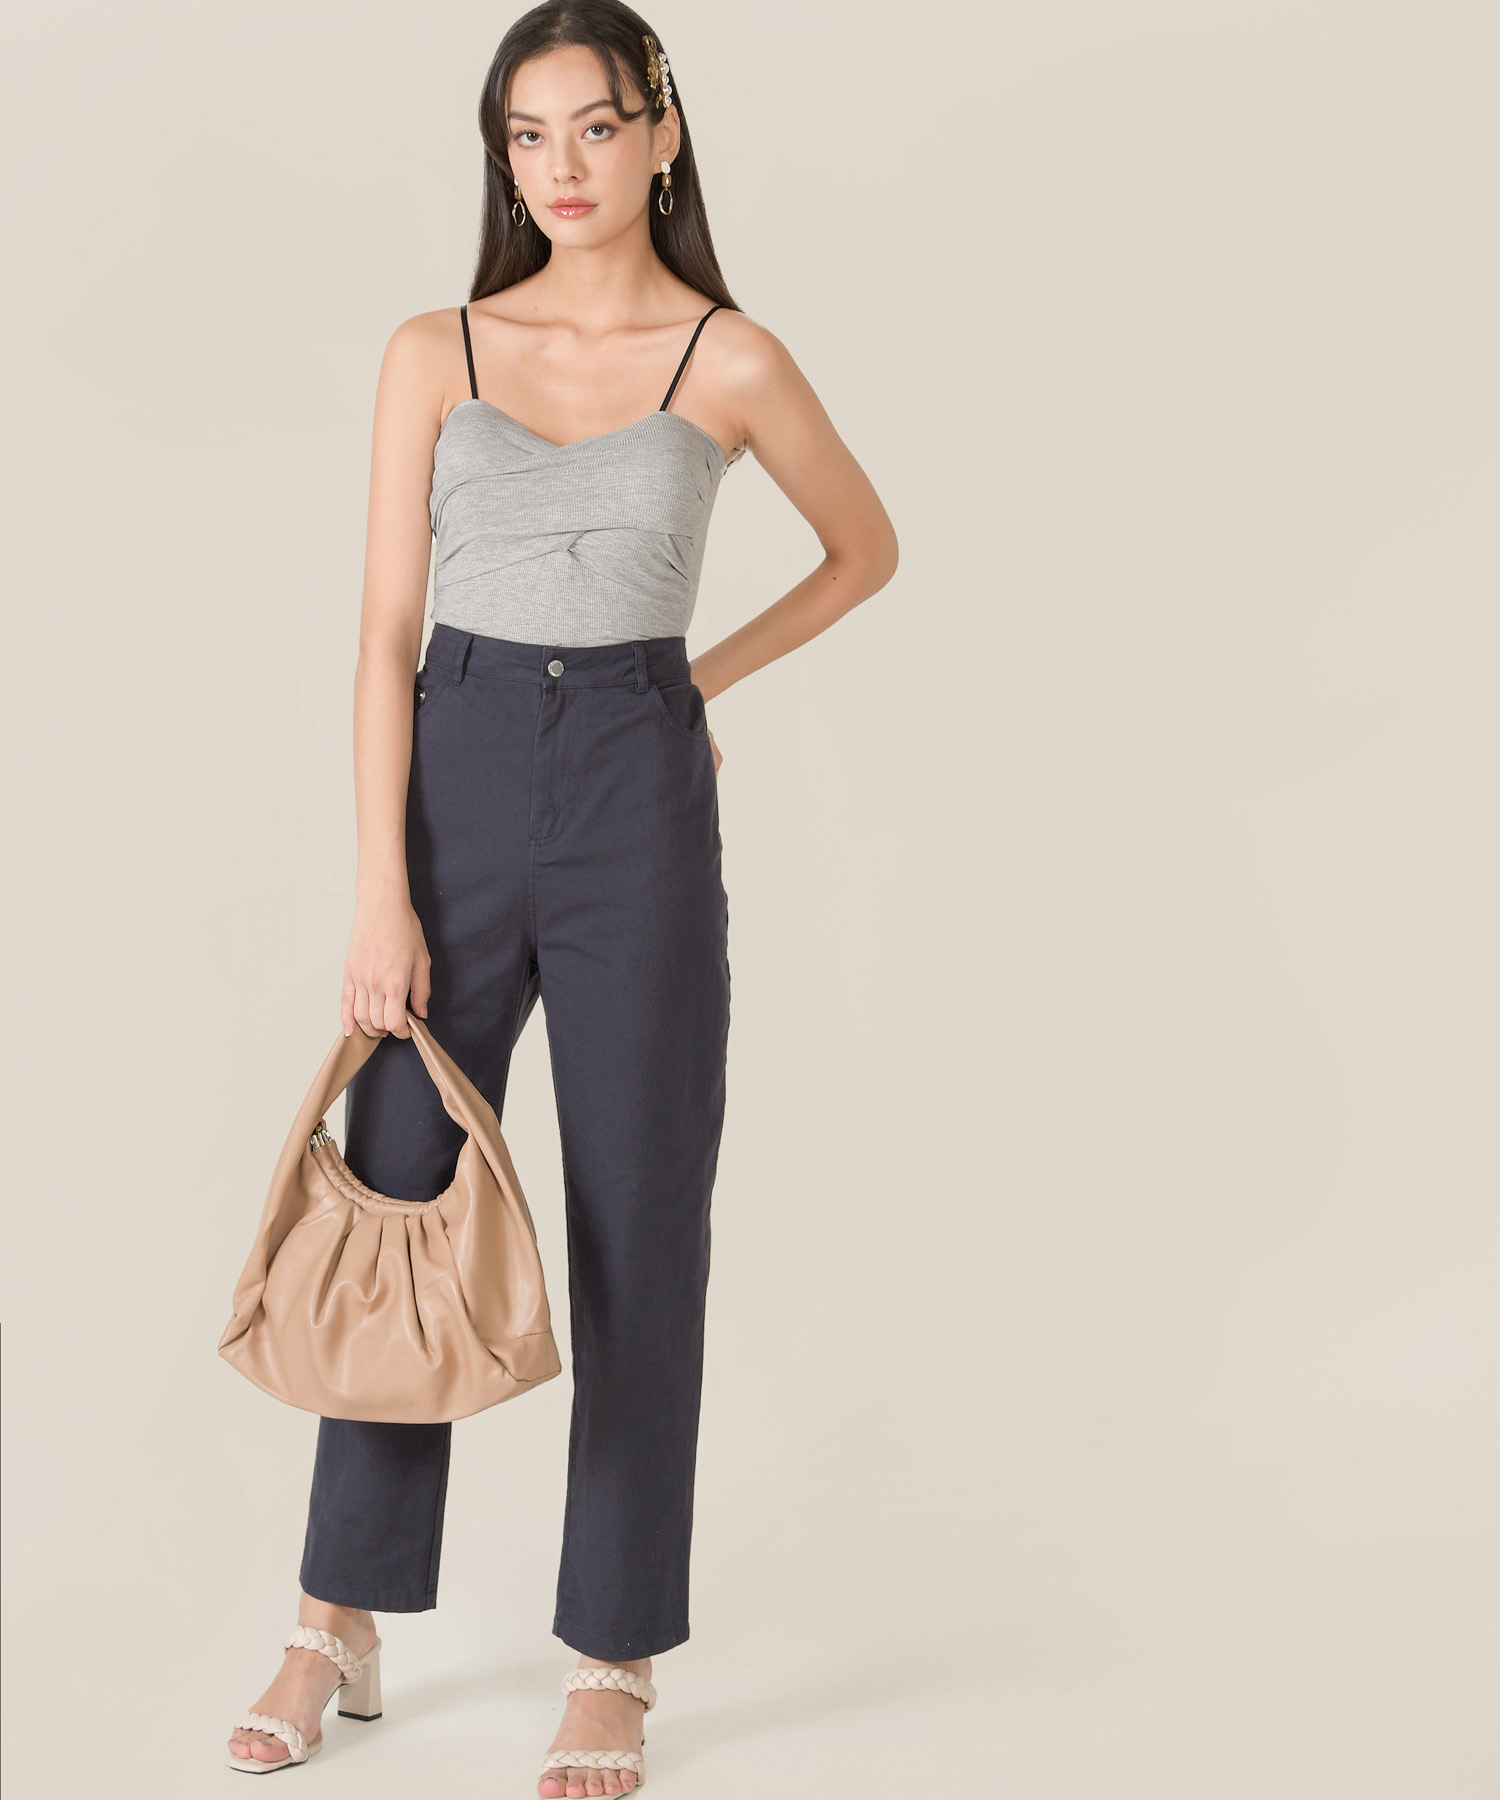 ando-ruched-knit-camisole-heather-grey-2